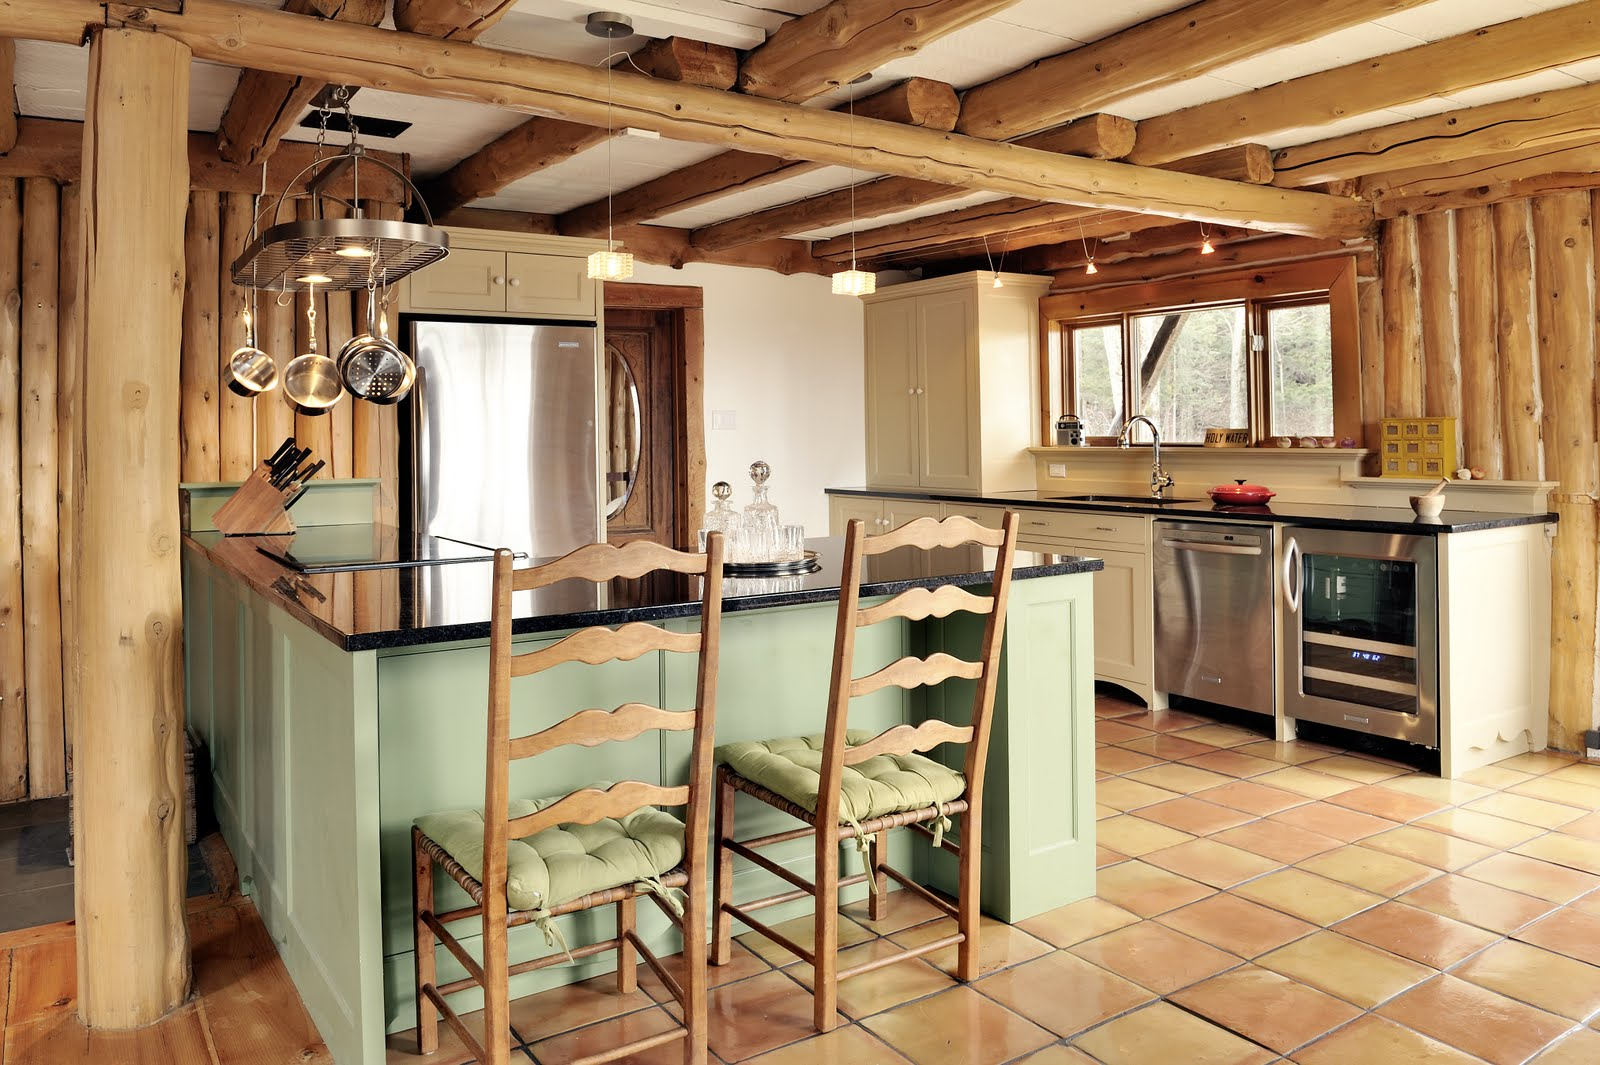 Featured Image of Rustic Kitchen Design With Wood Beam Ceiling